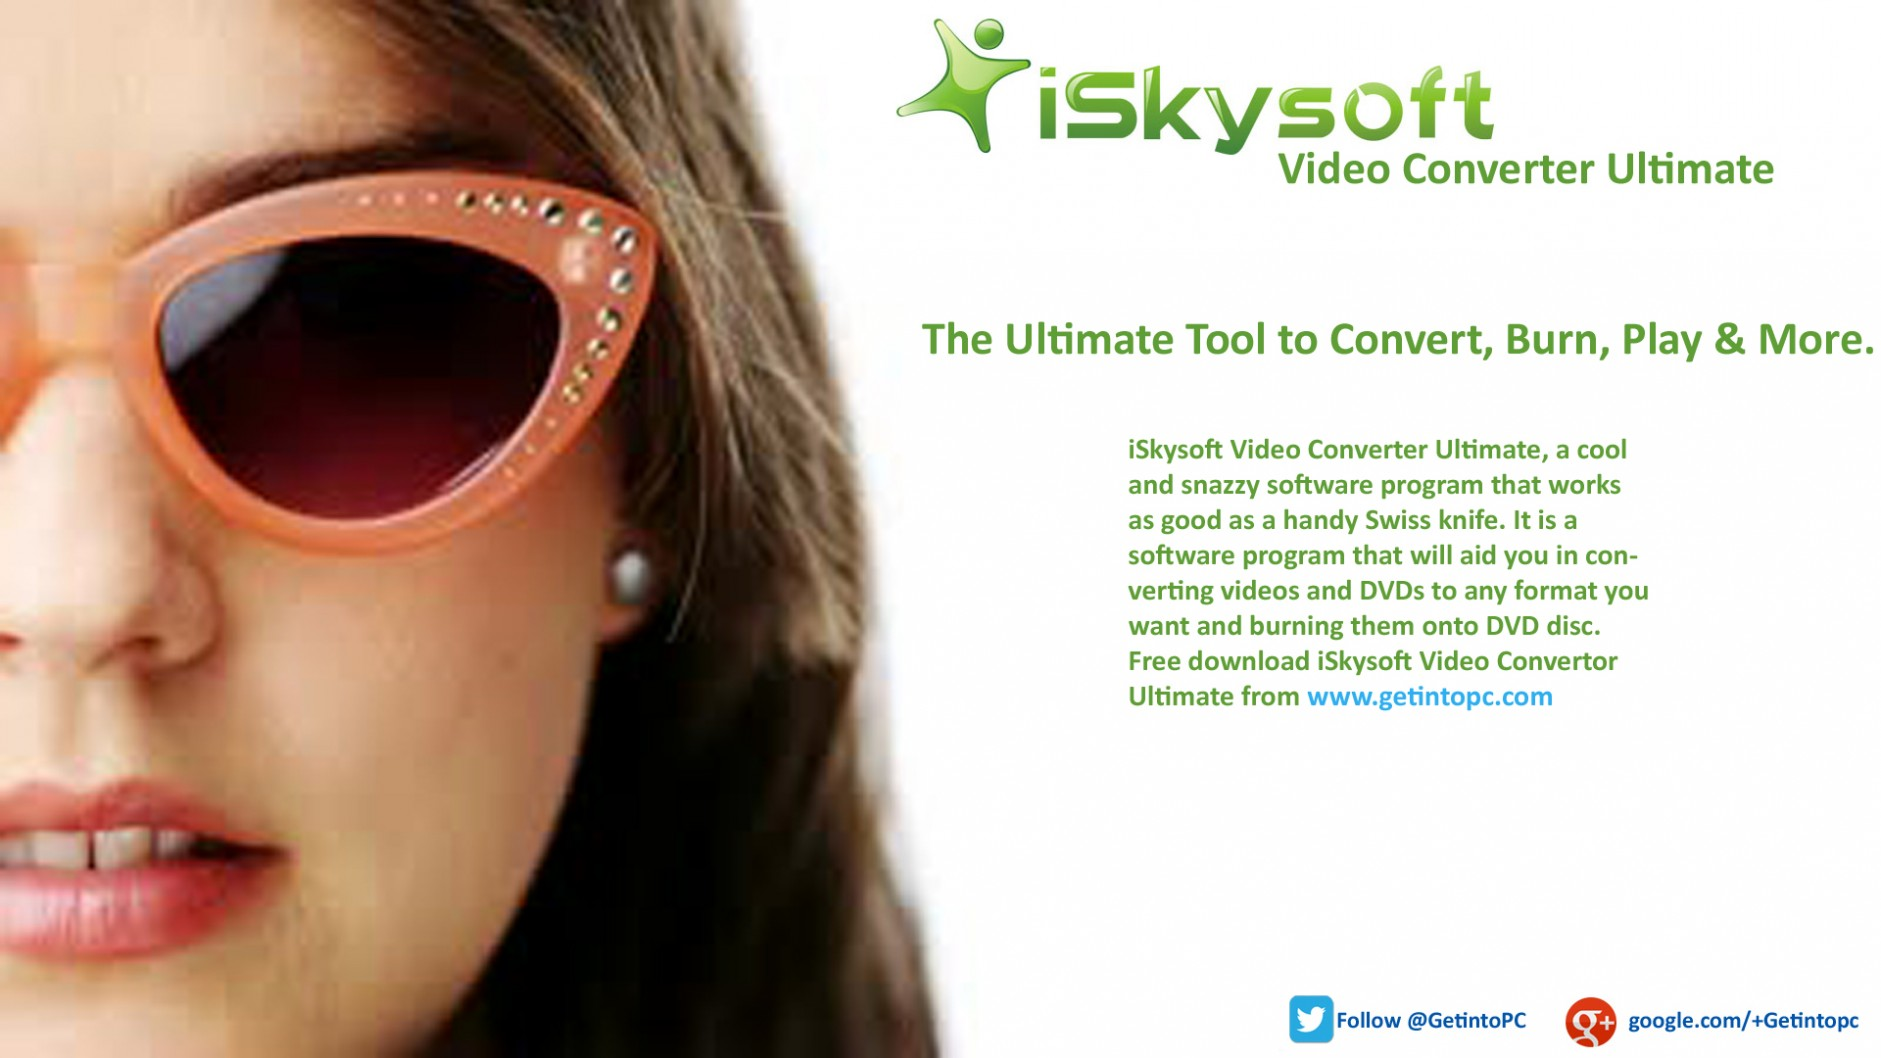 iSkysoft Video Convertor Ultimate Free Download